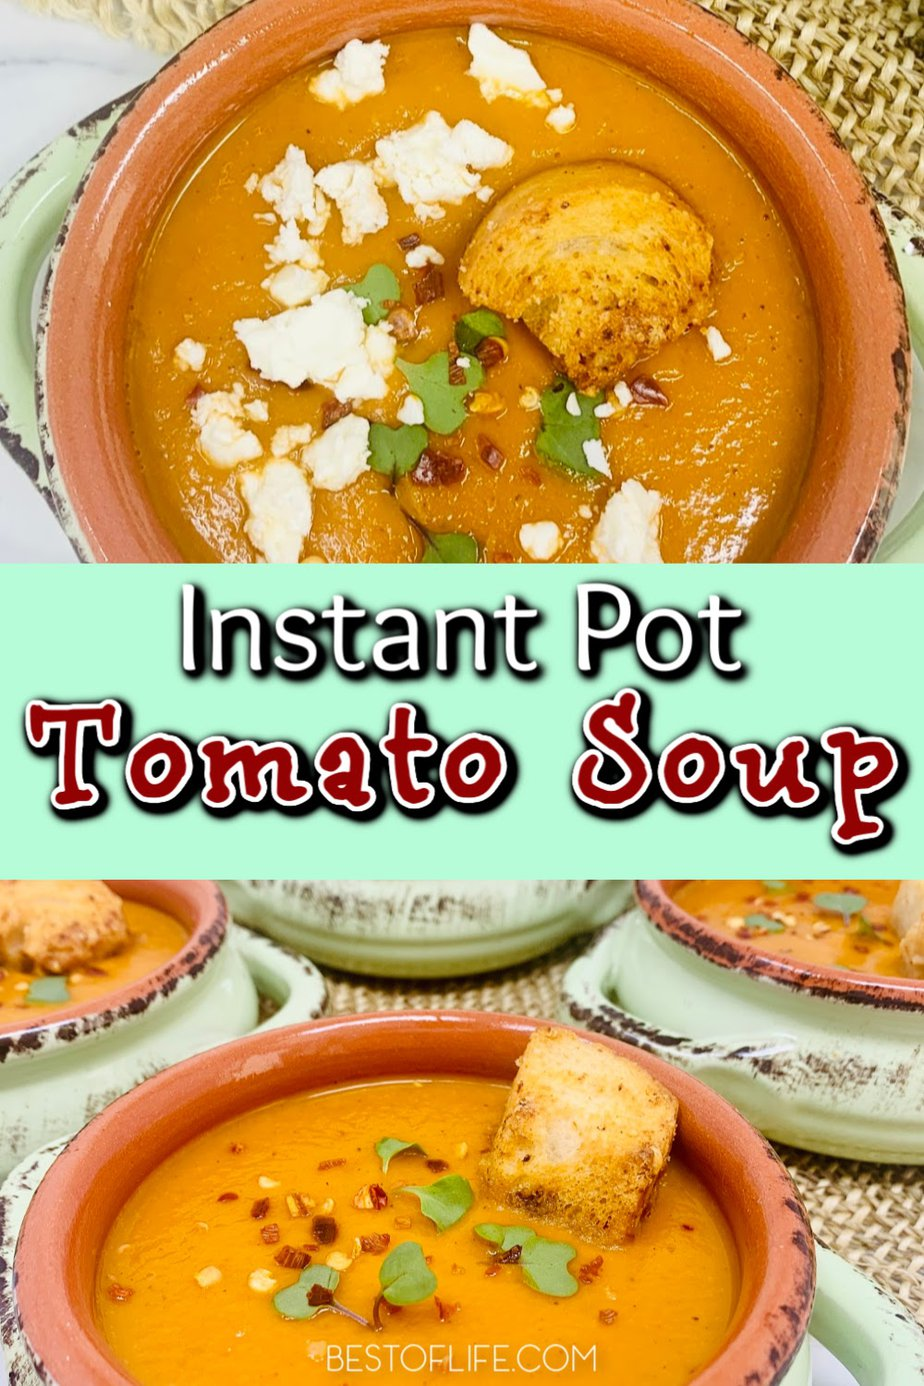 You can easily make Instant Pot red pepper tomato soup for dinner any night of the week or even pack it up for a healthy lunch on the go. Instant Pot Soup Recipes Healthy | Instant Pot Lunch Recipes | Homemade Tomato Soup Recipe | Instant Pot Soup Recipe | Instant Pot Meal Planning | On The Go Recipes for Lunch | Tomato Soup Recipes #instantpot #soup via @thebestoflife